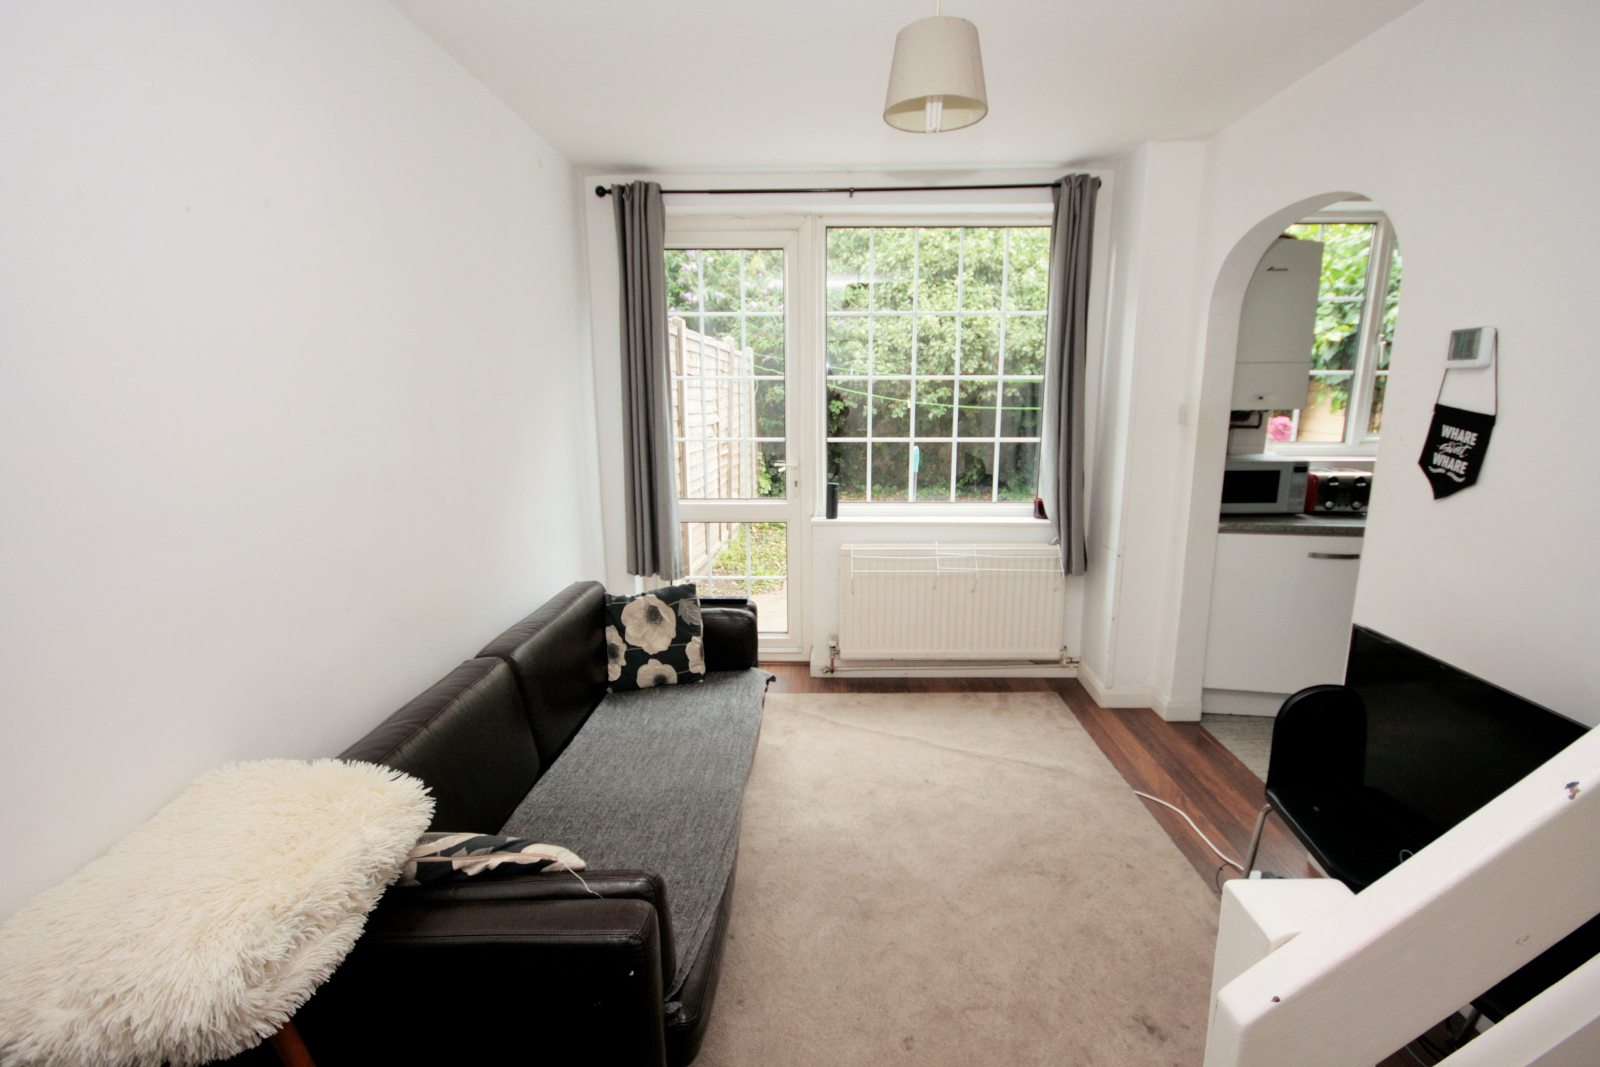 4 bedroom house for rent with private front and rear garden